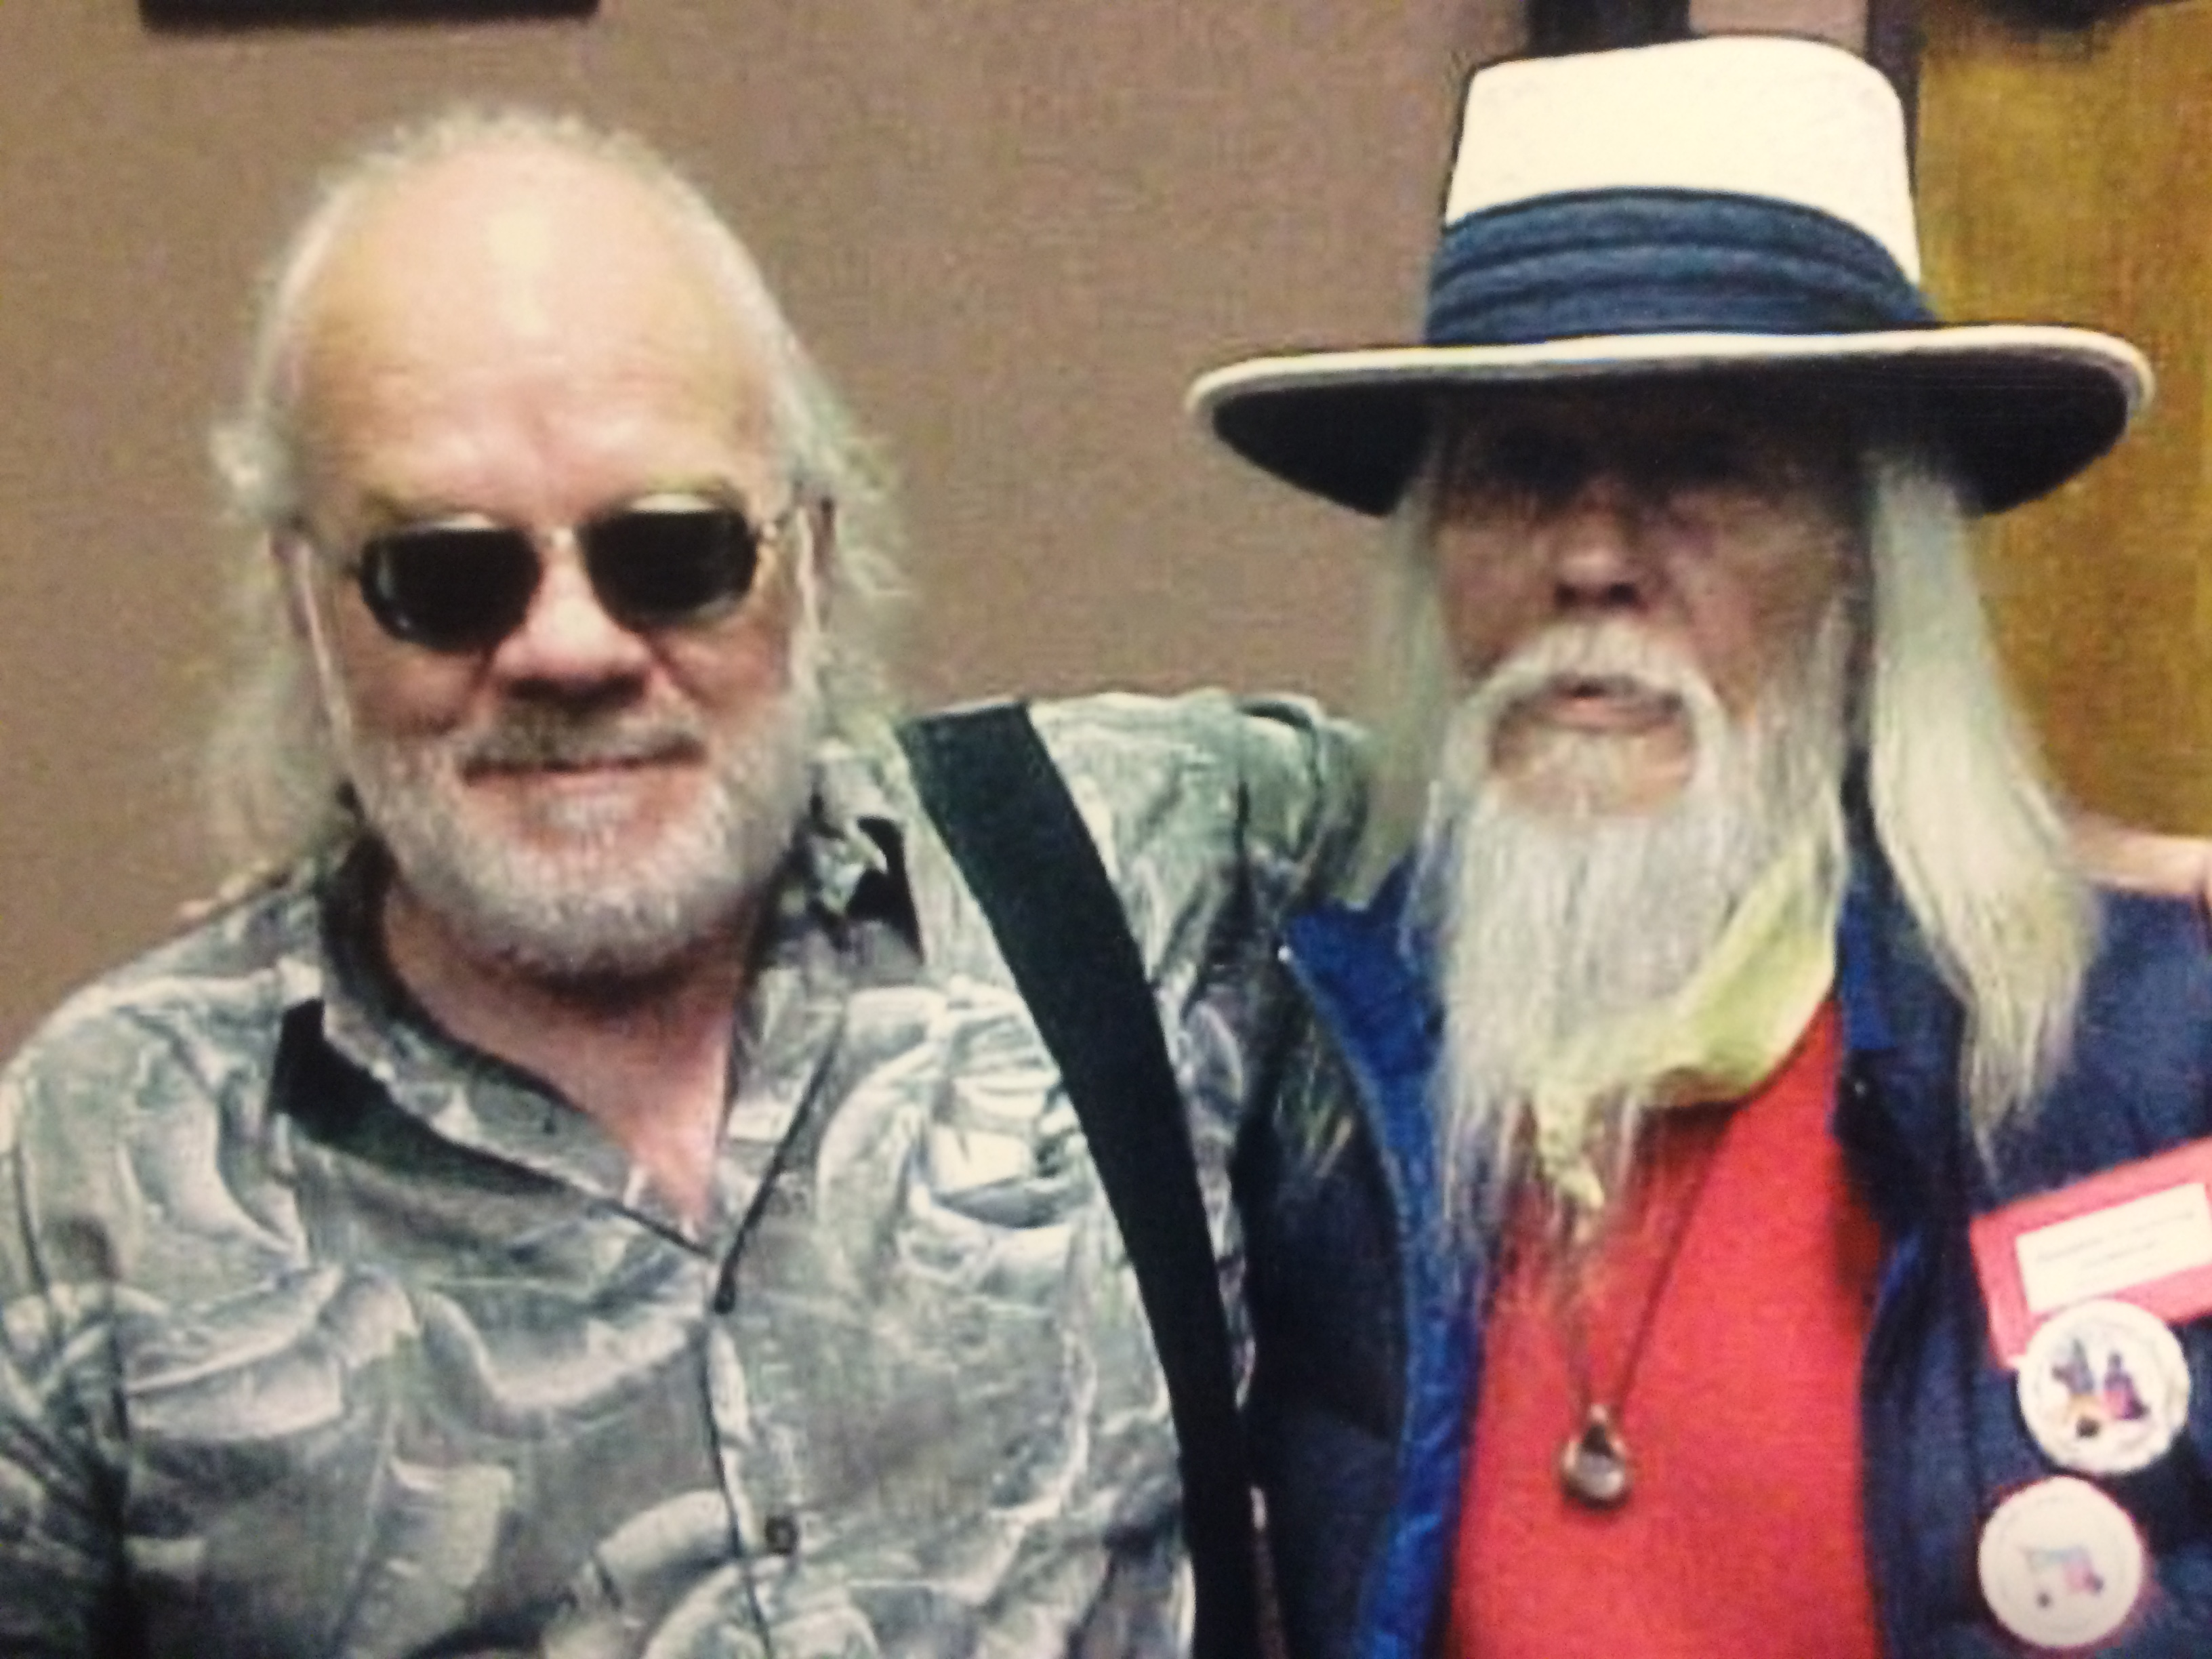 Geprge Clayton Johnson (R) with old friend Brian Kirby. Photo by Paul Hunt